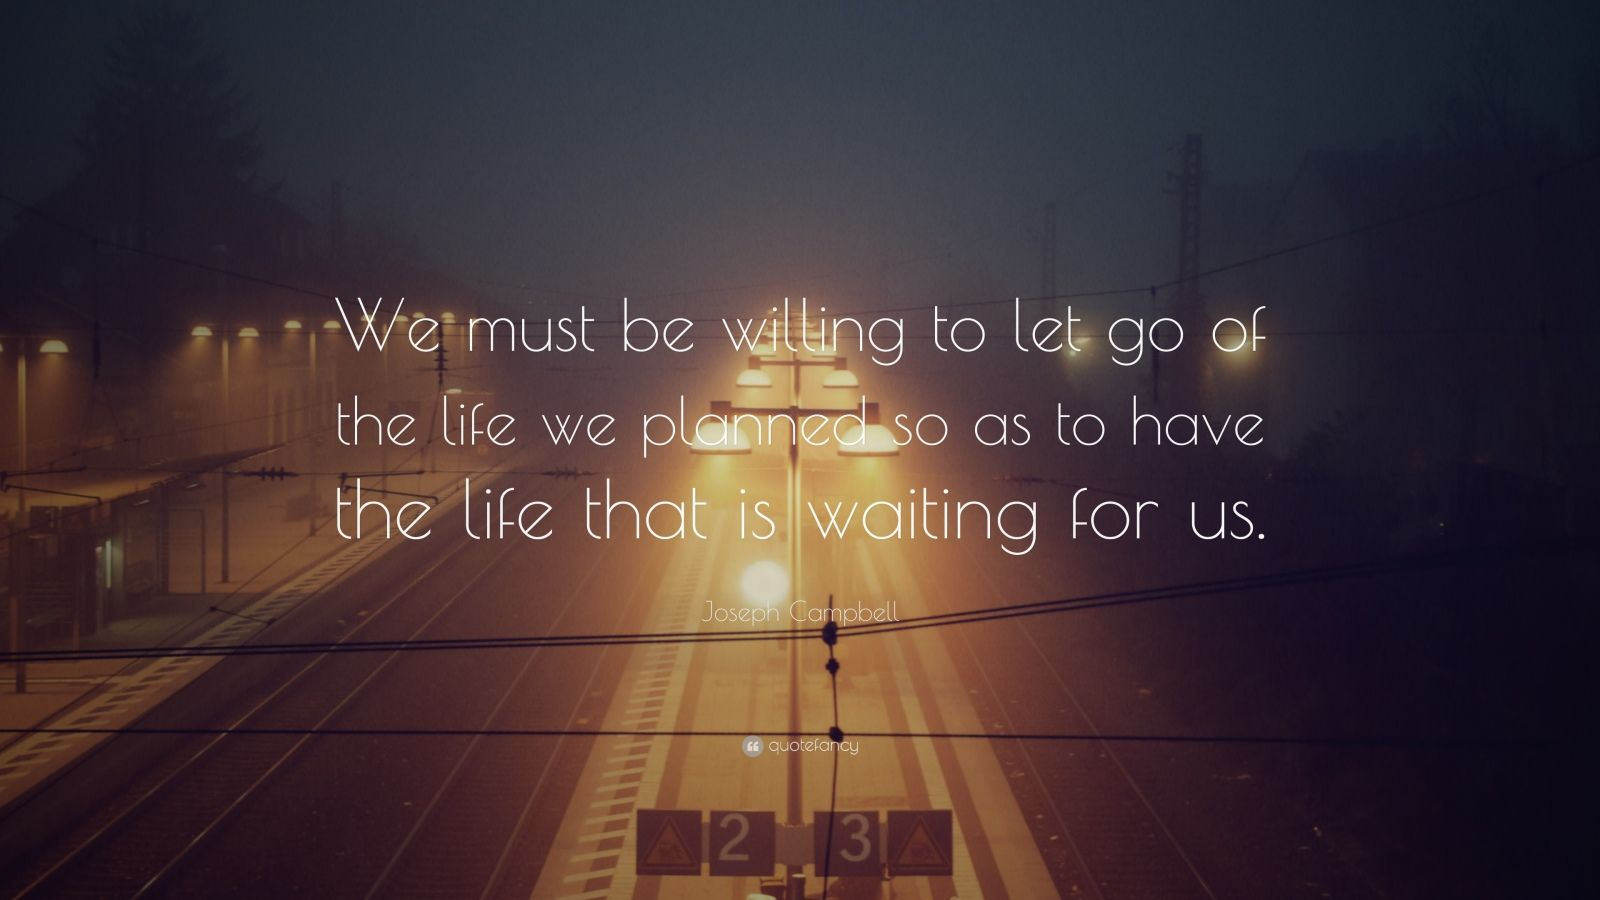 """Joseph Campbell Quote: """"We must be willing to let go of the life we planned so as to have the life that is waiting for us."""""""